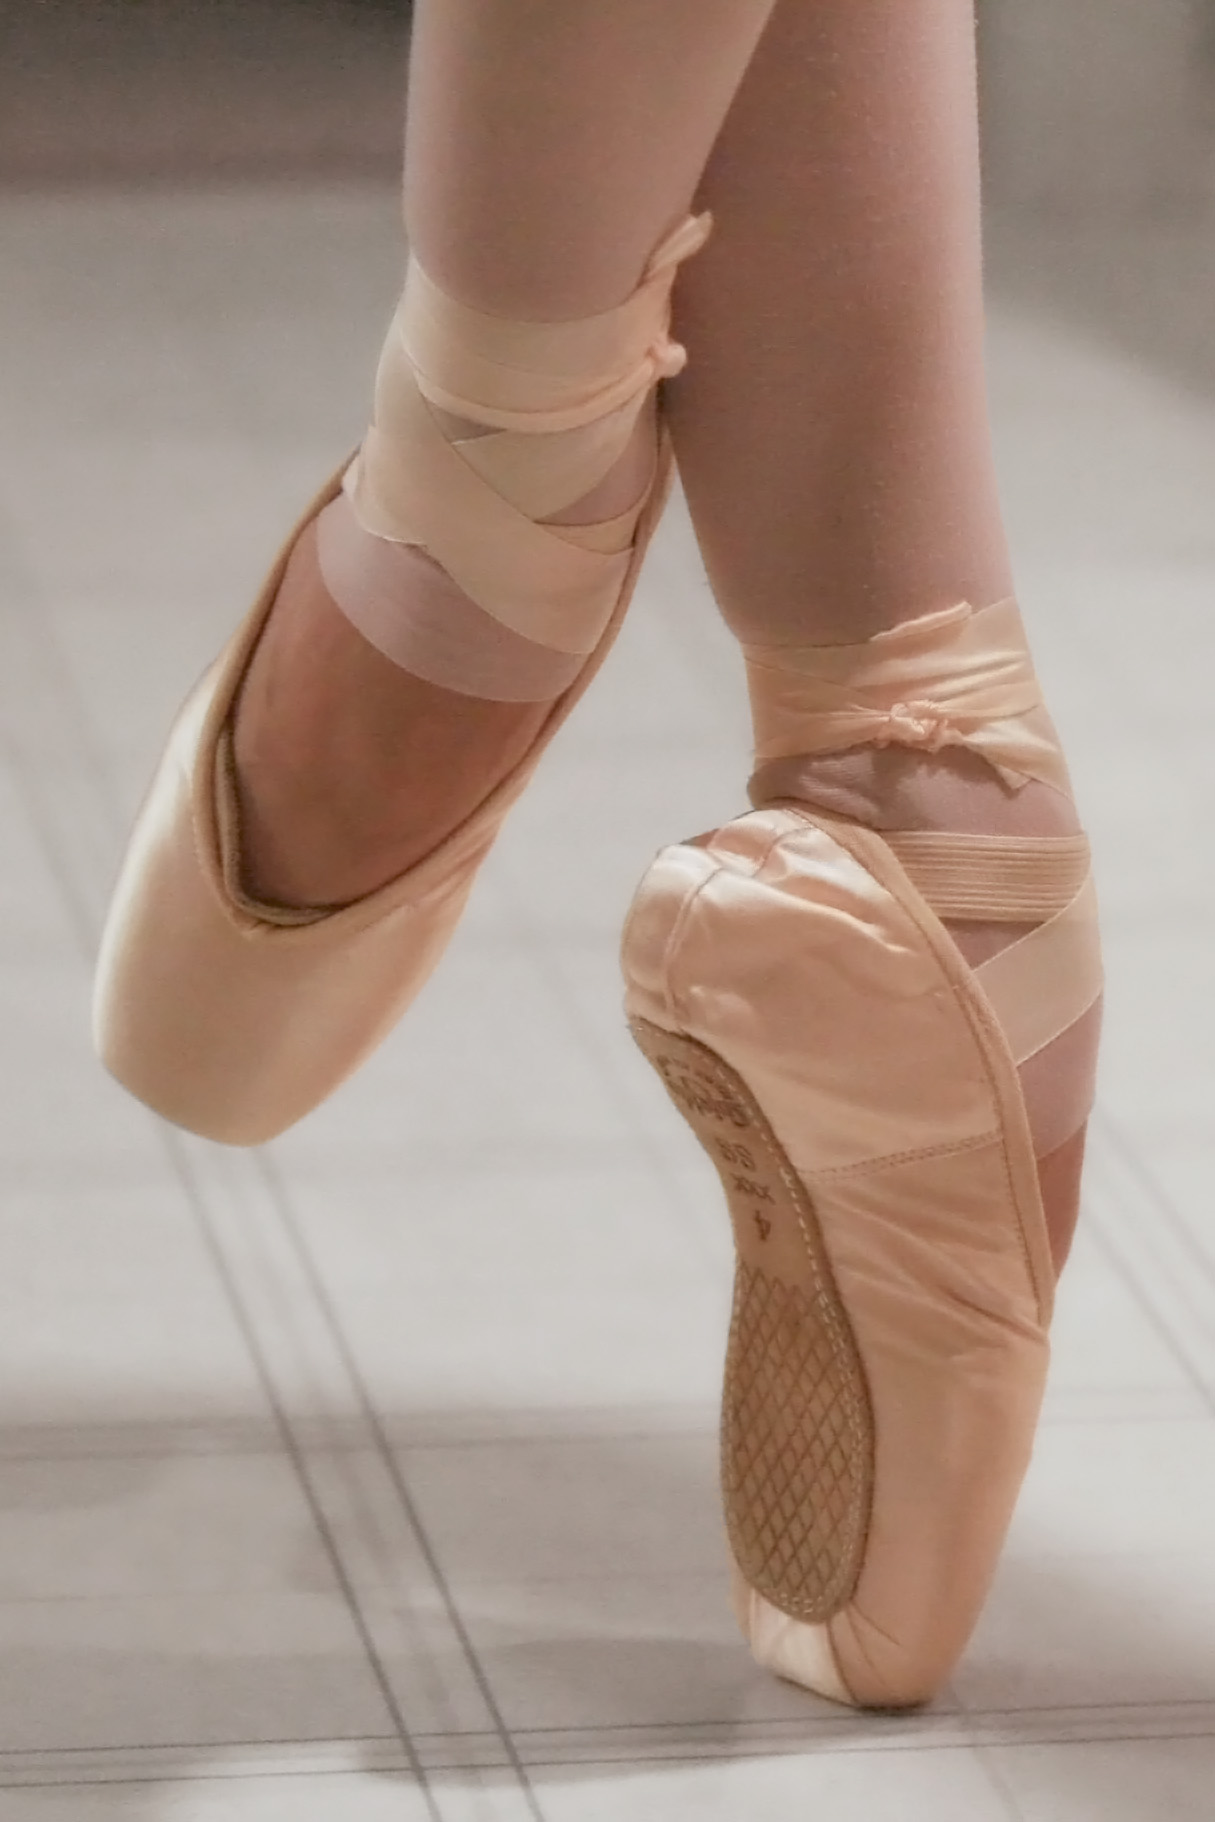 Description PointeShoes jpgBallet Dancers On Pointe